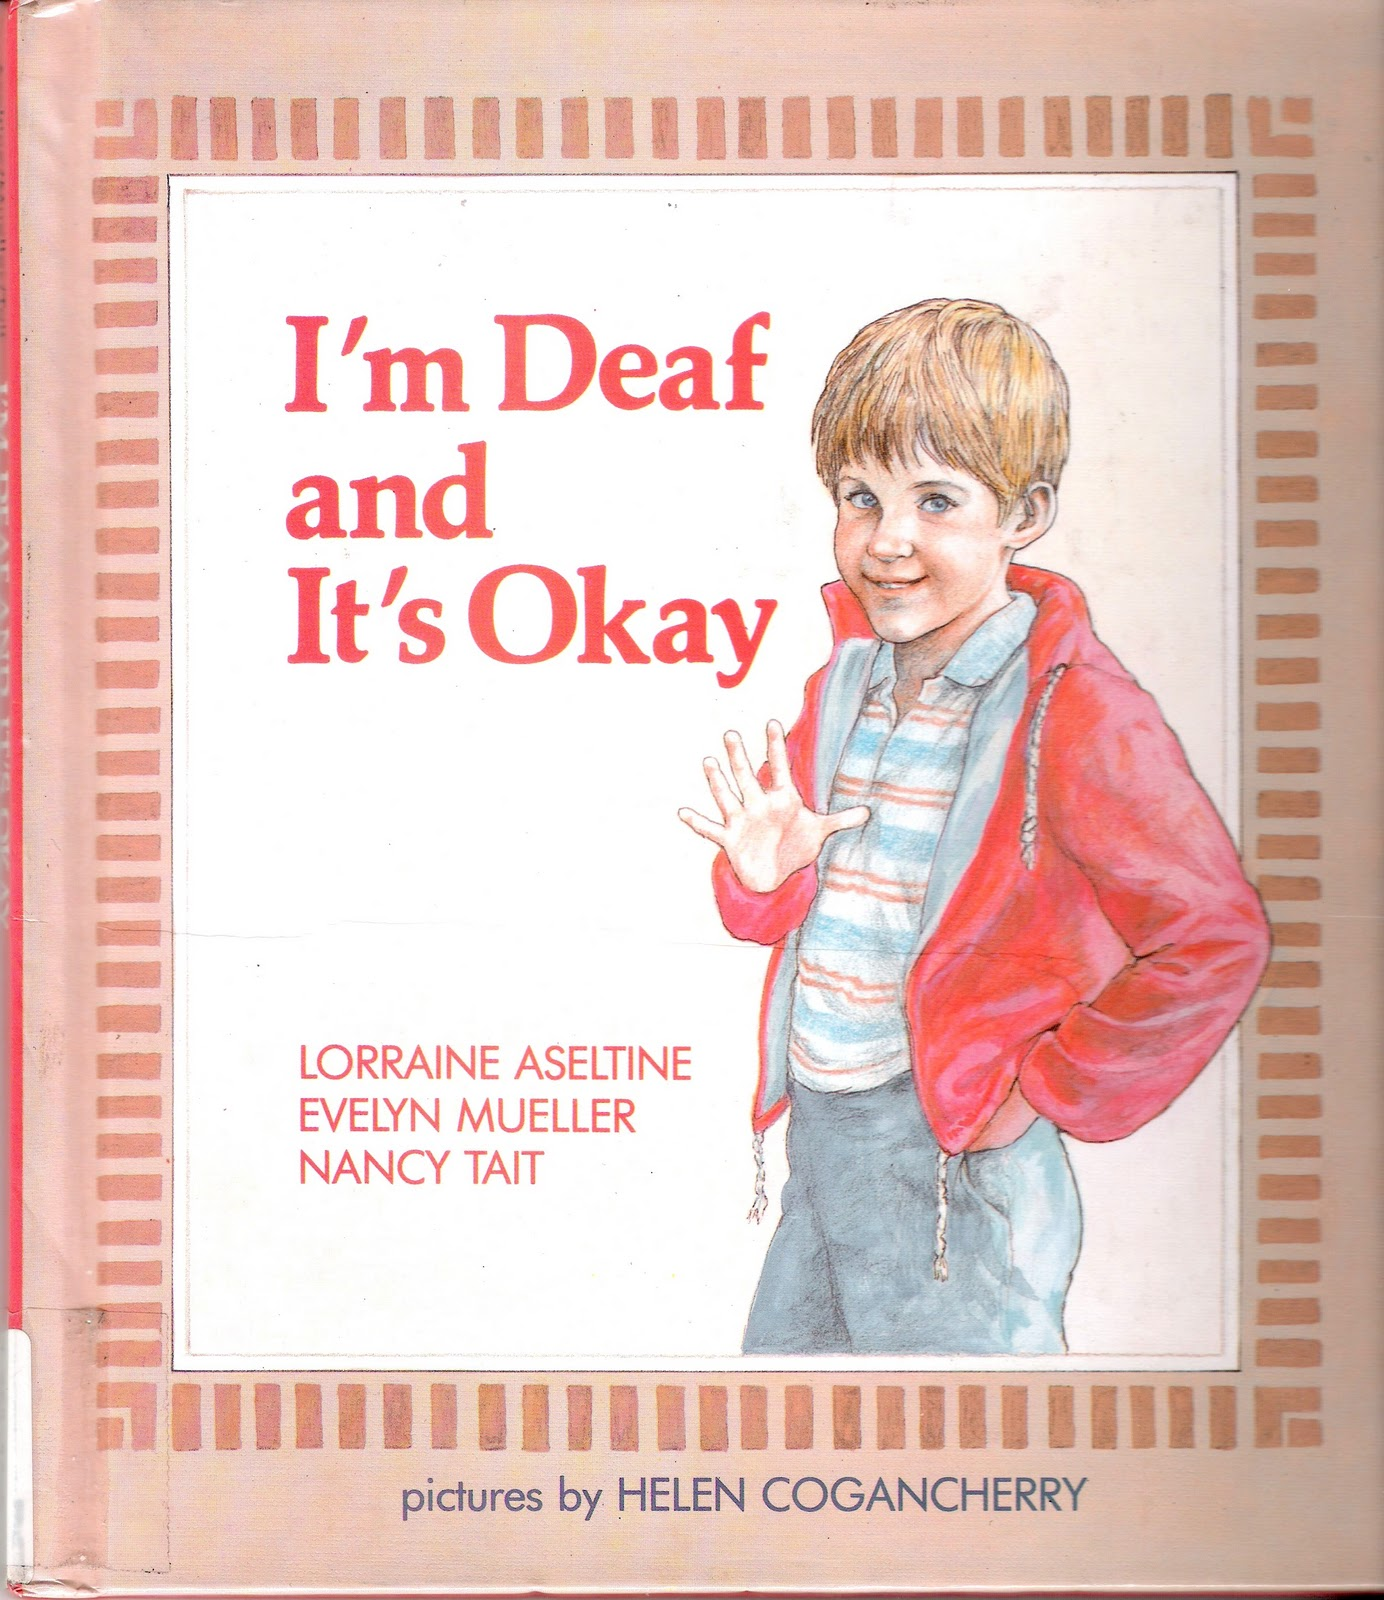 Deaf Child Crossing: A Book Review